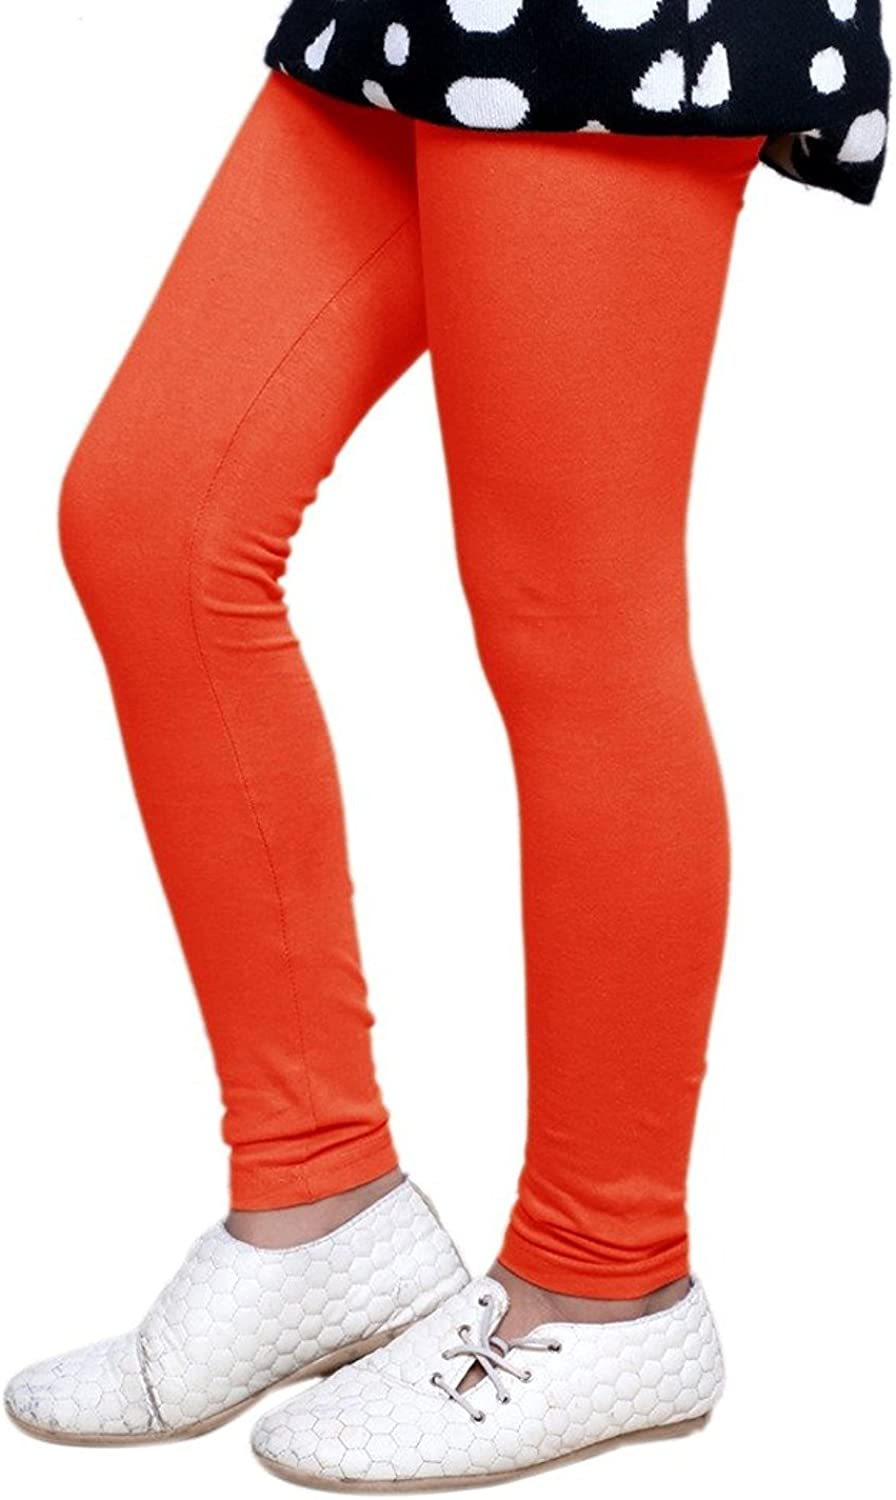 Pack Of 4 Indistar Girls 2 Cotton Solid Legging Pants /_Multicolor/_Size-7-8 Years/_71413141920-IW-P4-30 and 2 Cotton Printed Legging Pants